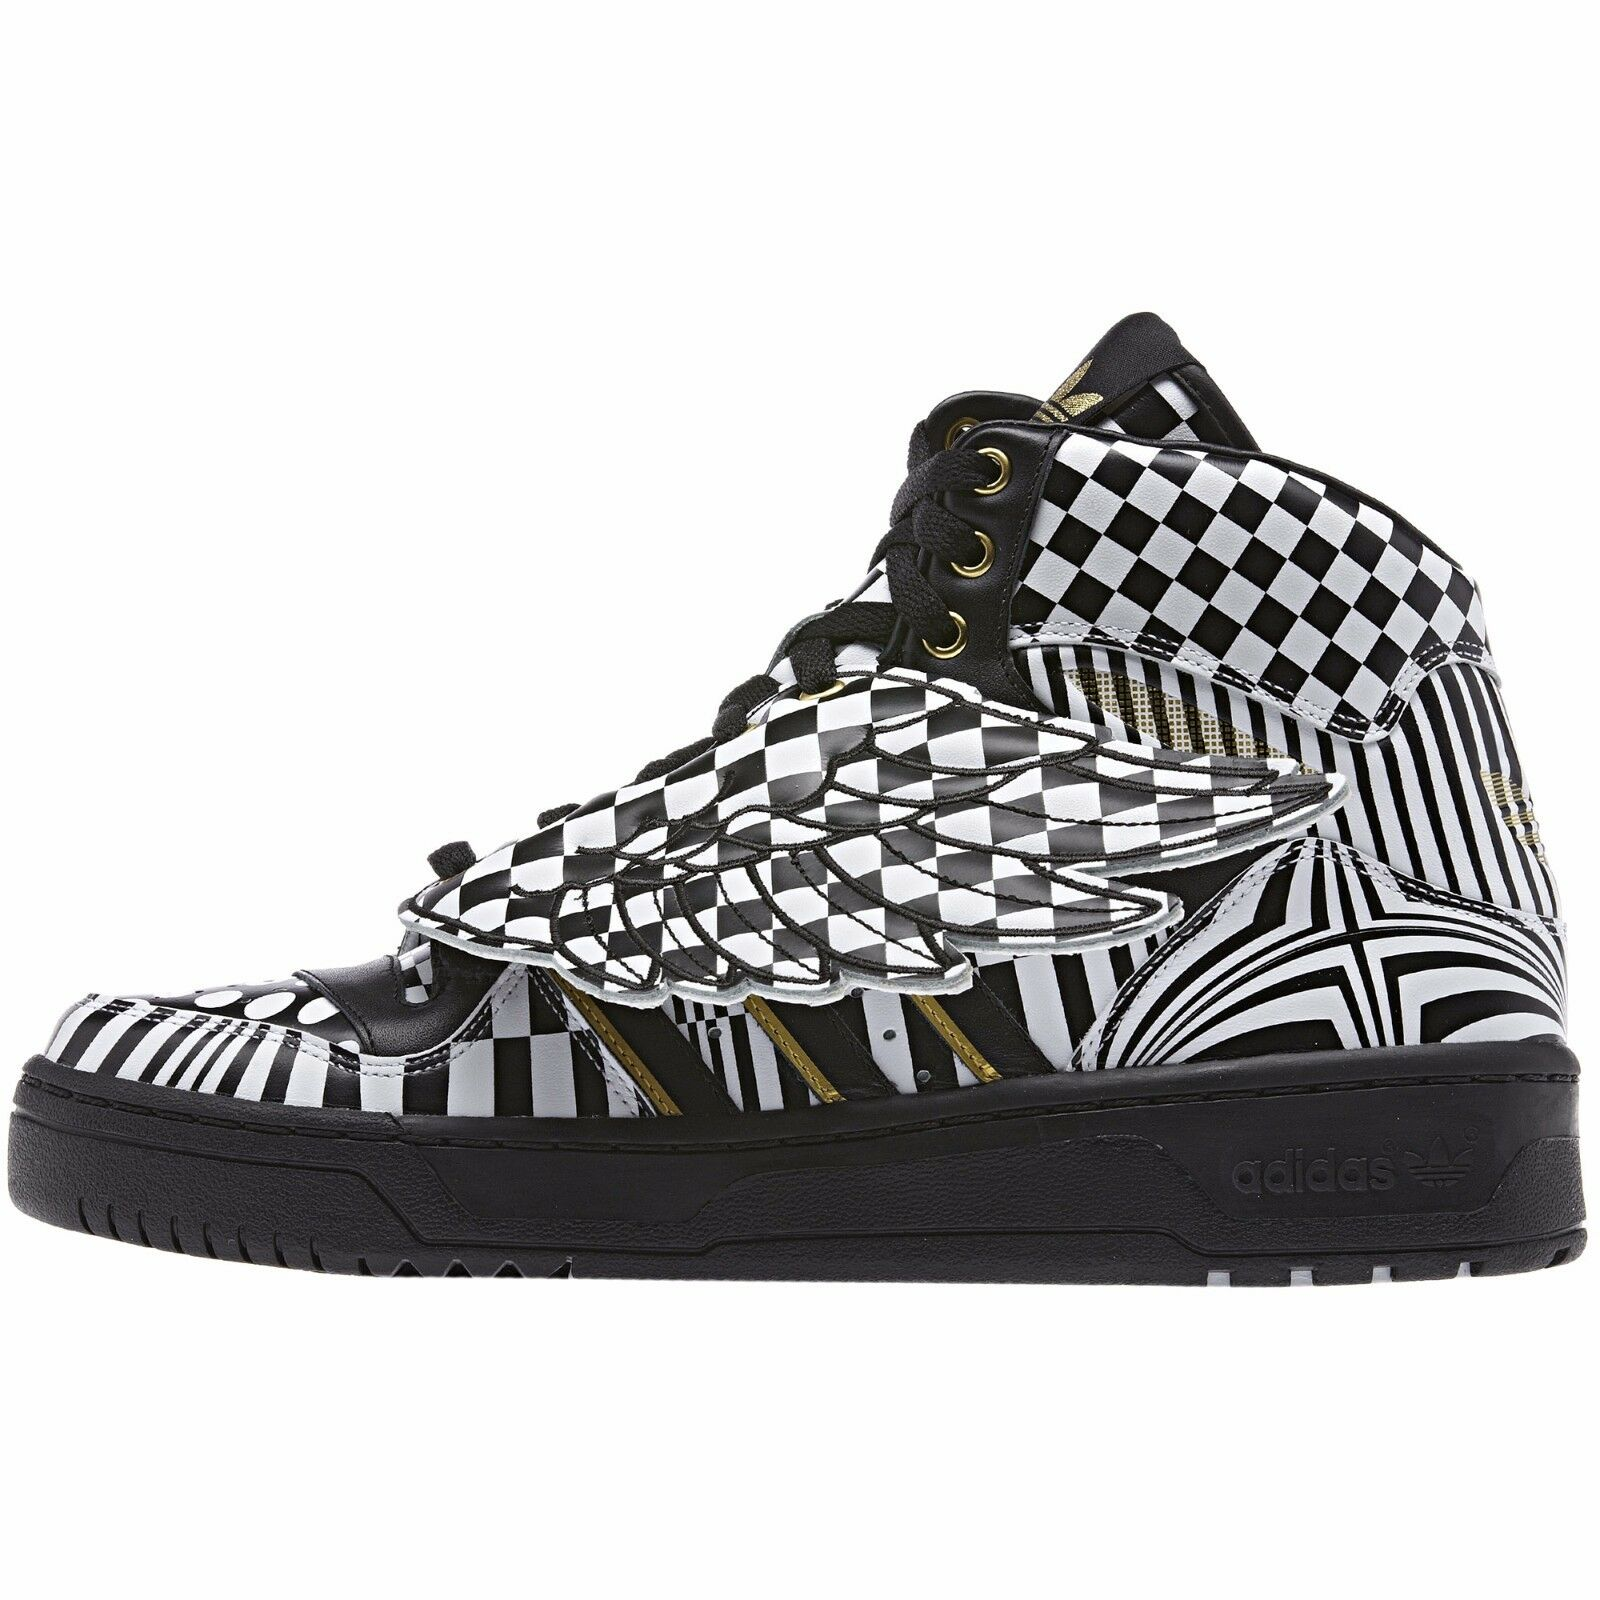 Adidas Originals Jeremy G95768 Scott Wings Op Art G95768 Jeremy Limited Edition 79b91f